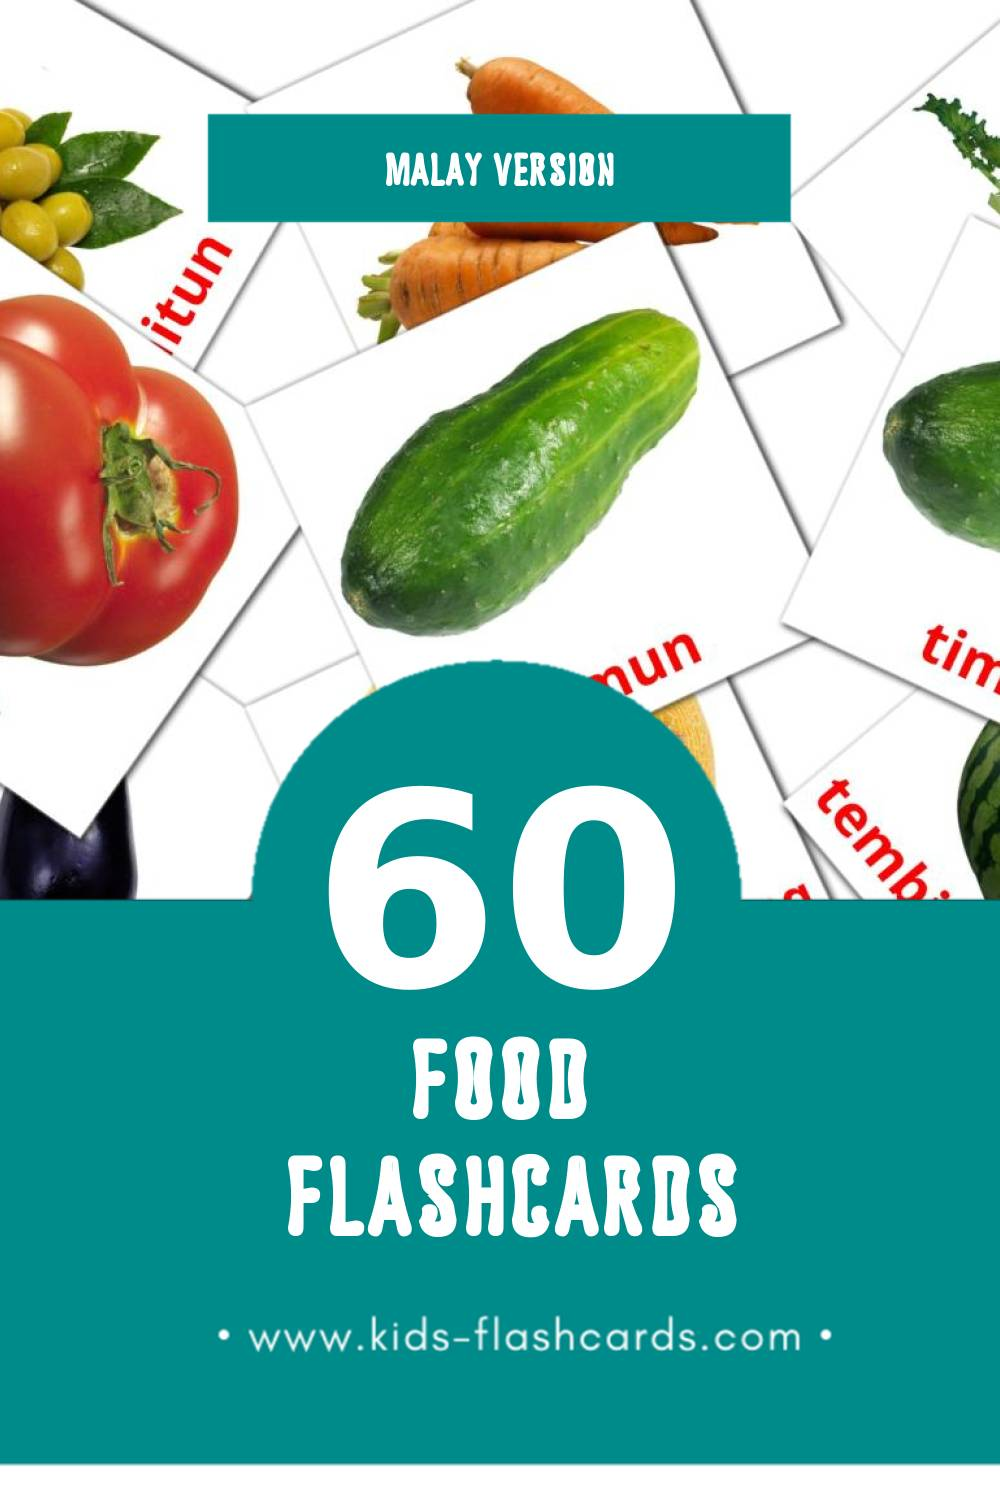 Visual Makanan Flashcards for Toddlers (60 cards in Malay)